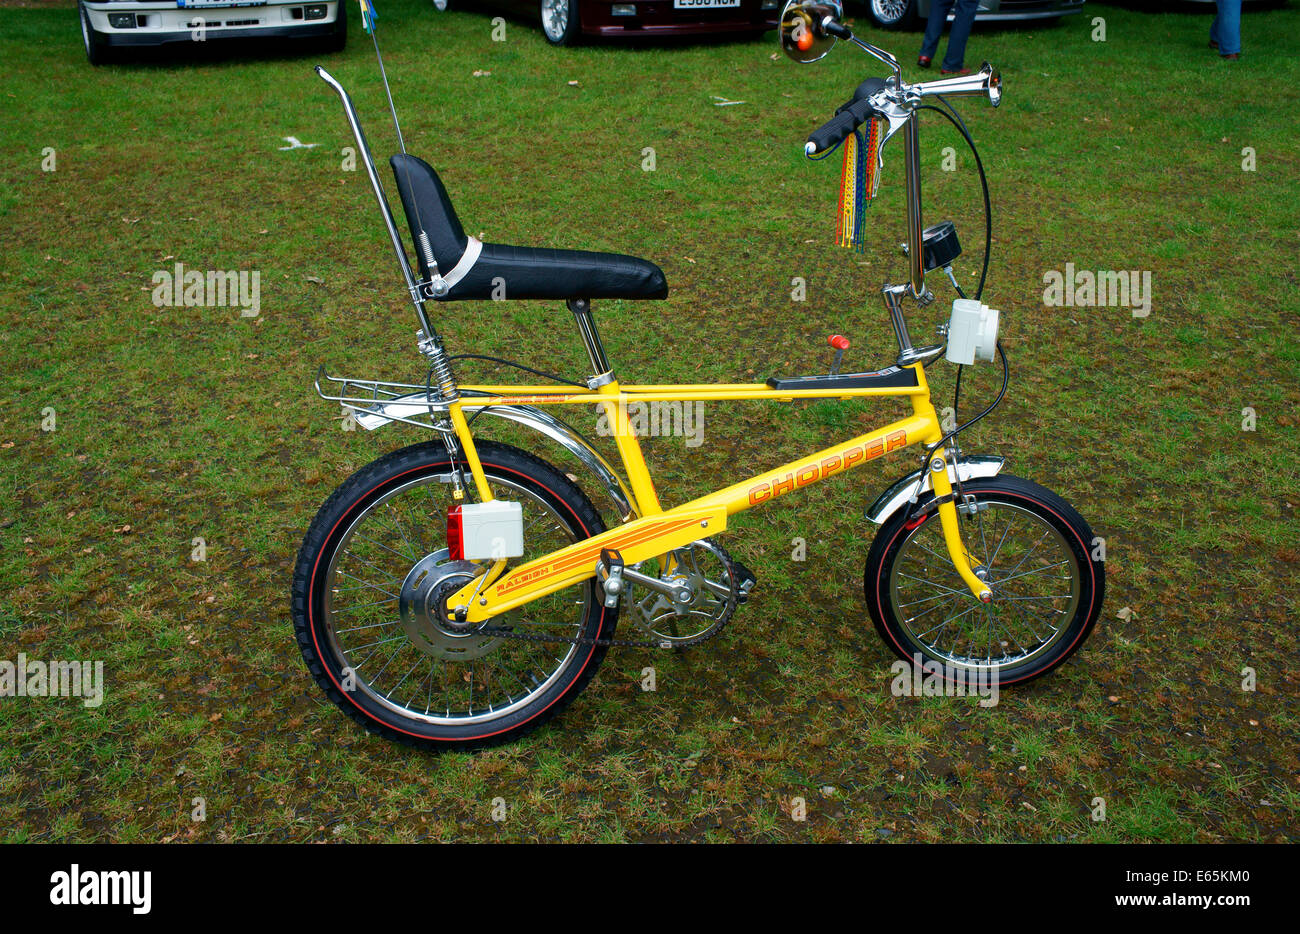 Raleigh Bike Stock Photos & Raleigh Bike Stock Images - Alamy